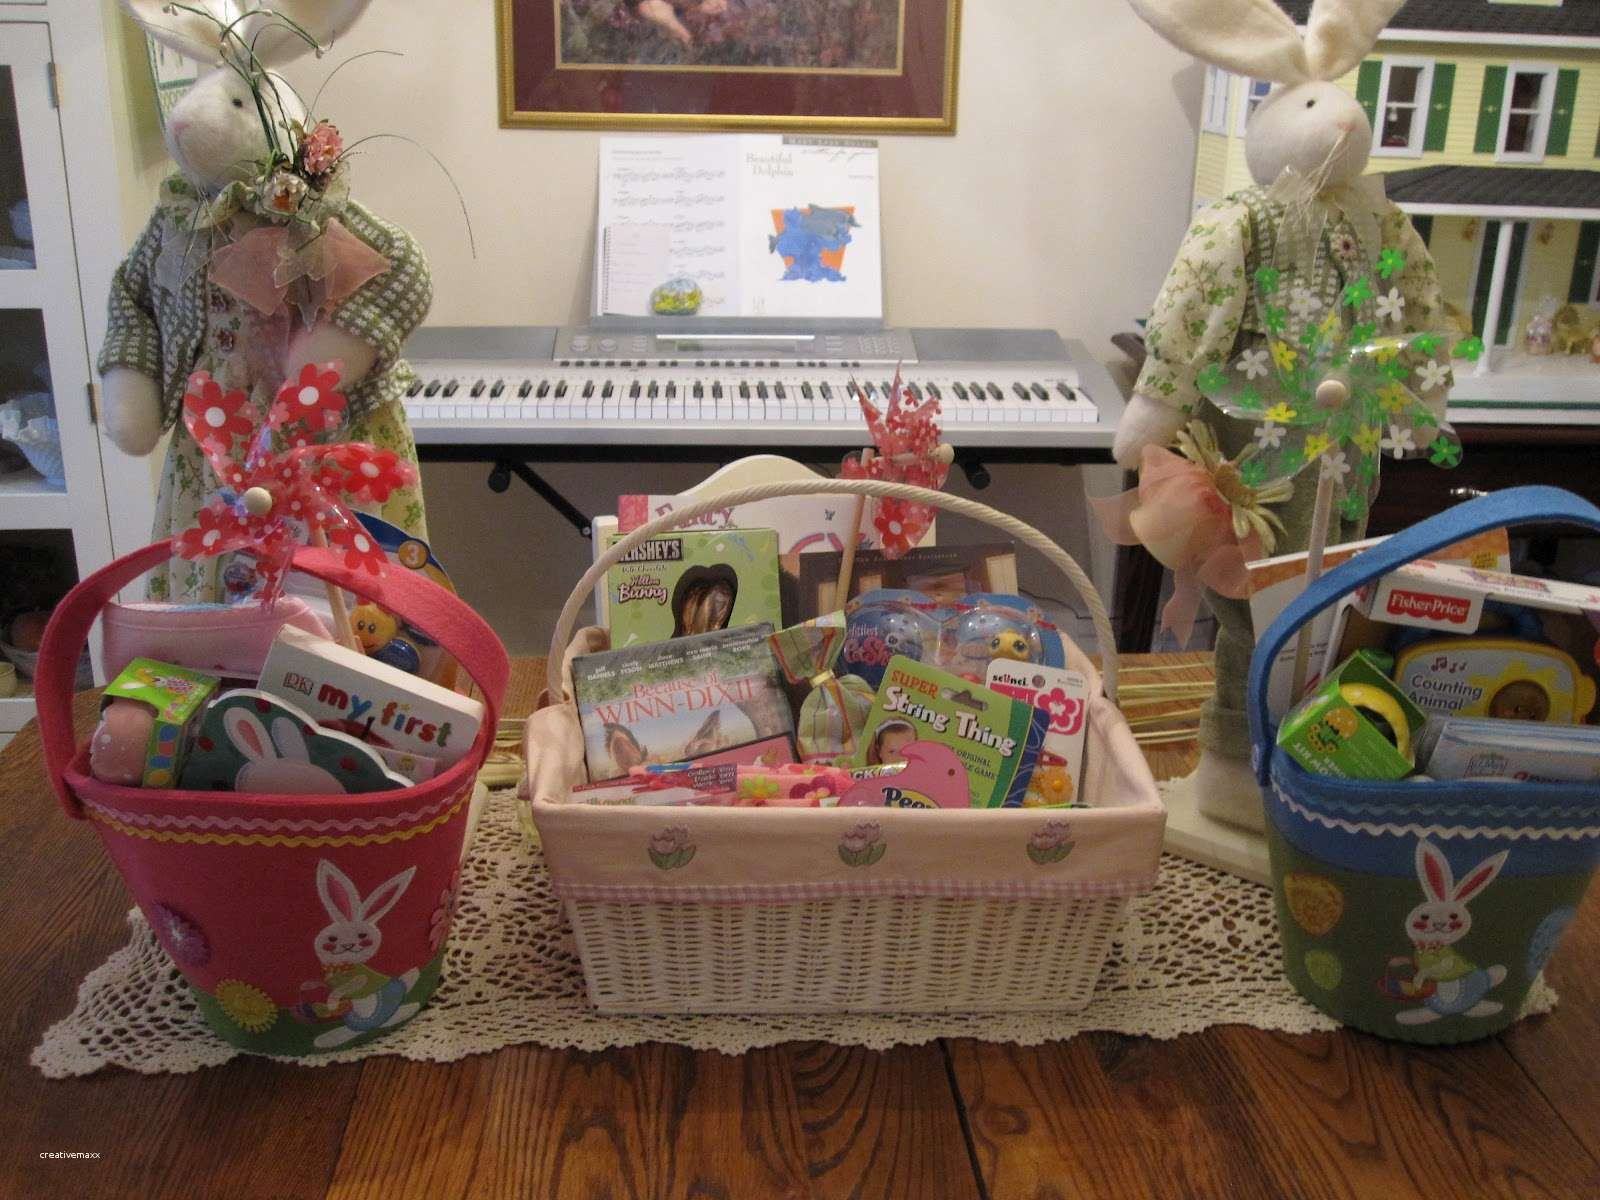 Inspirational easter basket ideas for toddler boy basket ideas easter basket ideas for toddler boy inspirational easter basket ideas for toddler boy first easter basket ideas for a young toddler perpetually negle Choice Image